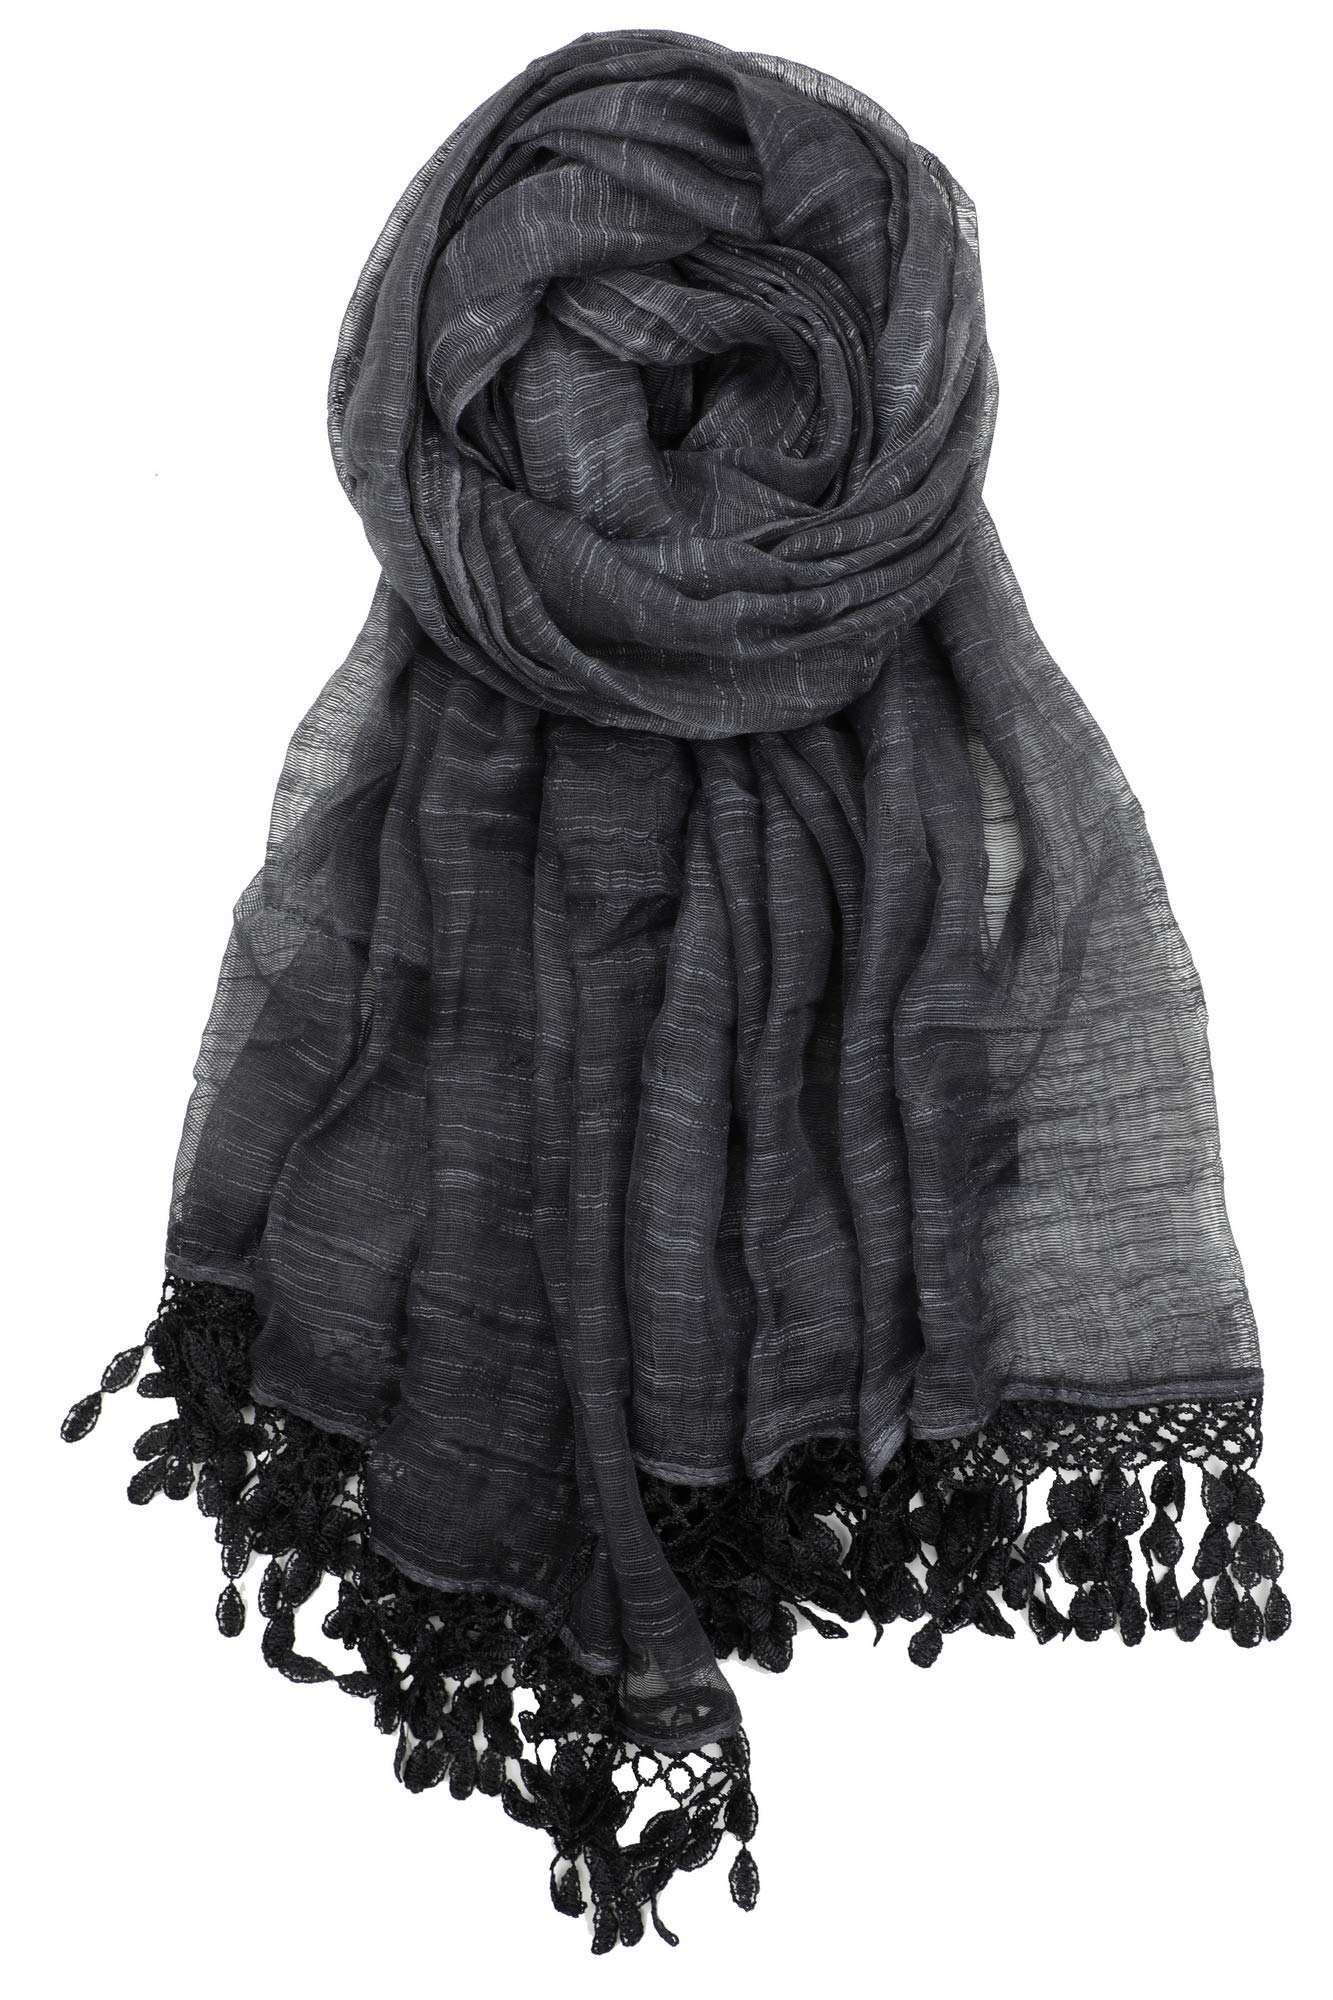 Achillea Women's Soft Feminine Linen Sheer Shawl Wrap Scarf w/Teardrop Fringes (Charcoal Black)